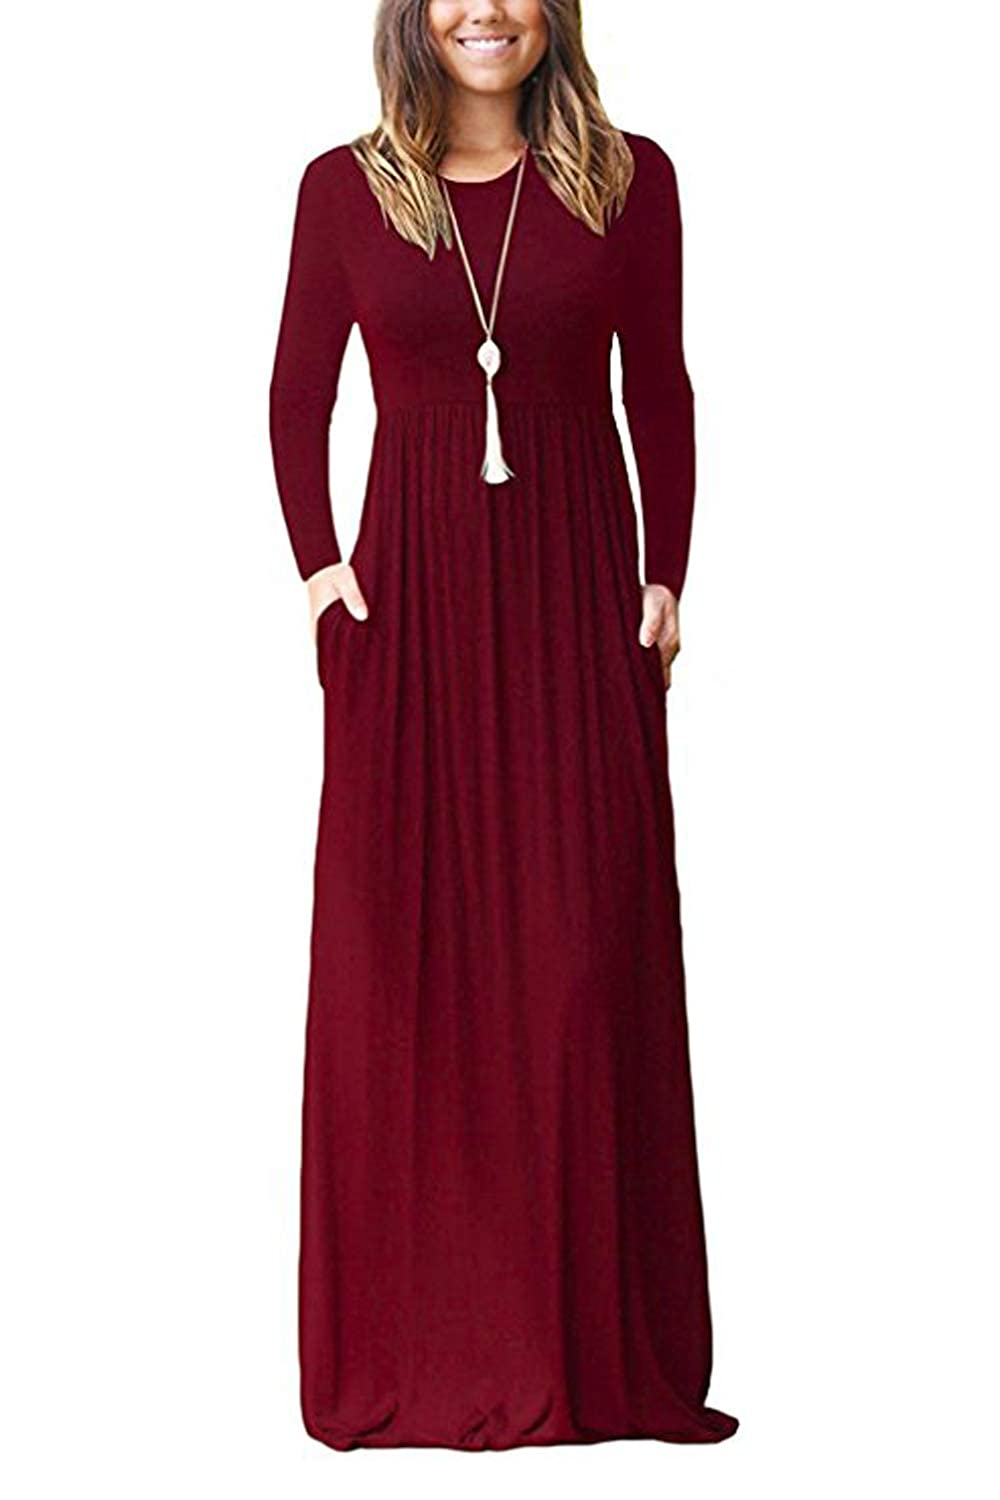 Green Ink Women' s Crewneck Long Sleeve Maxi Dress Casual Long Dress with Pockets